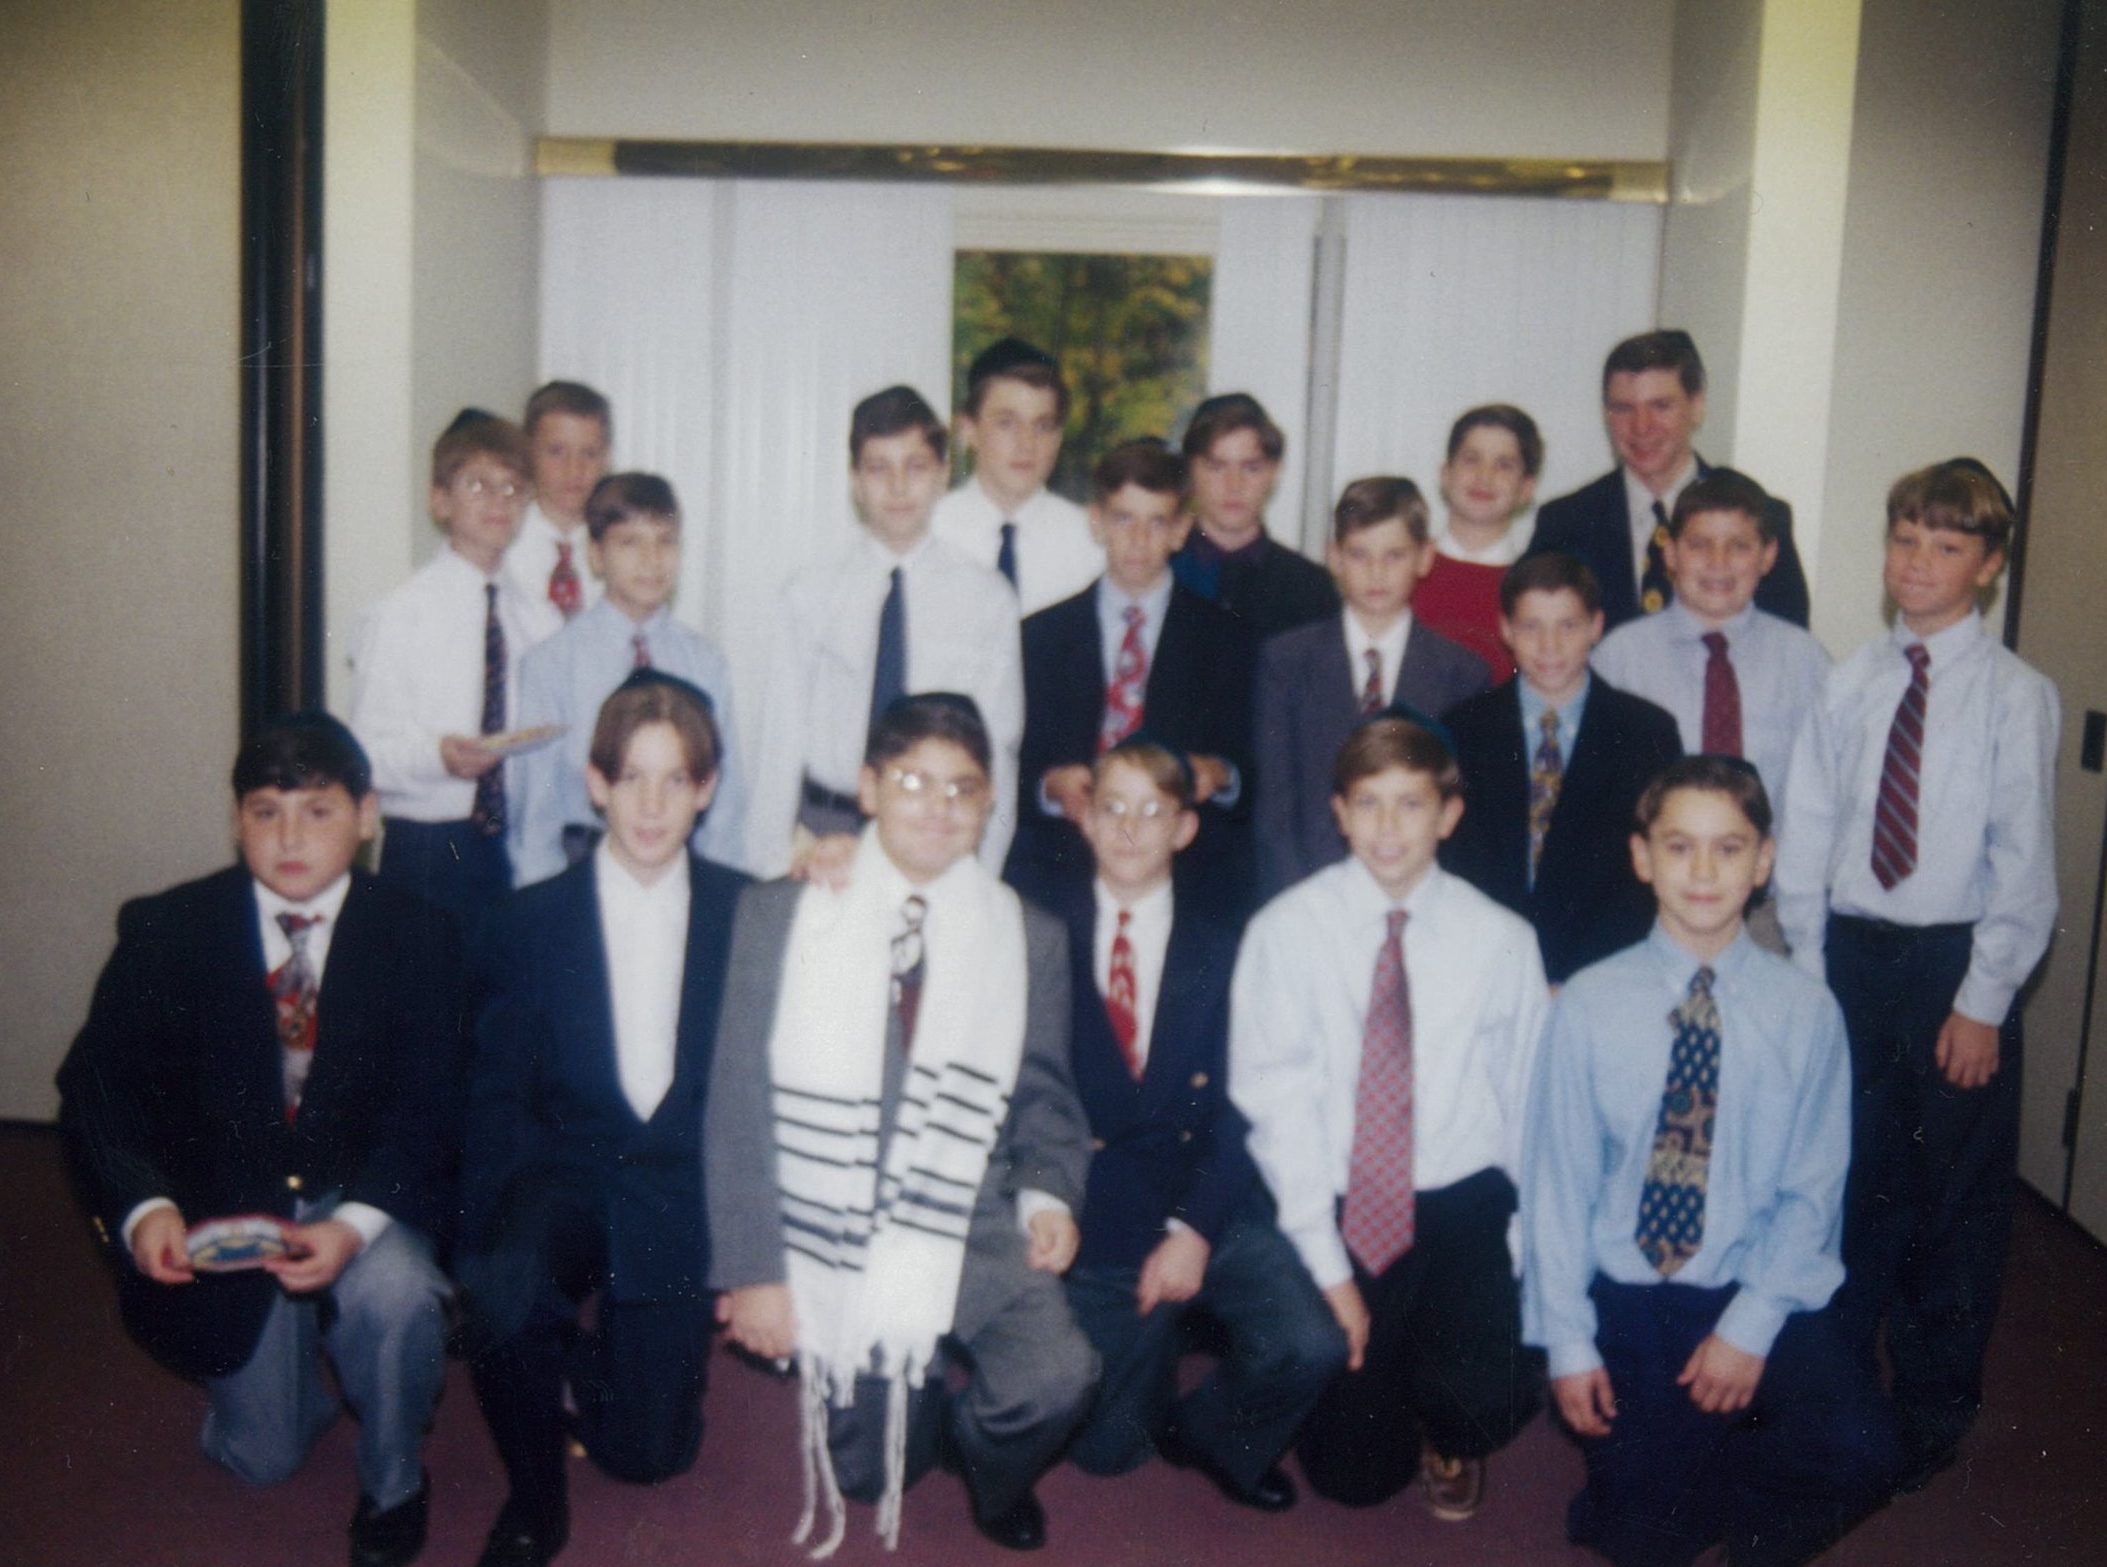 Photo Courtesy of the Barbara Gottlieb Collection. My Bar Mitzvah.